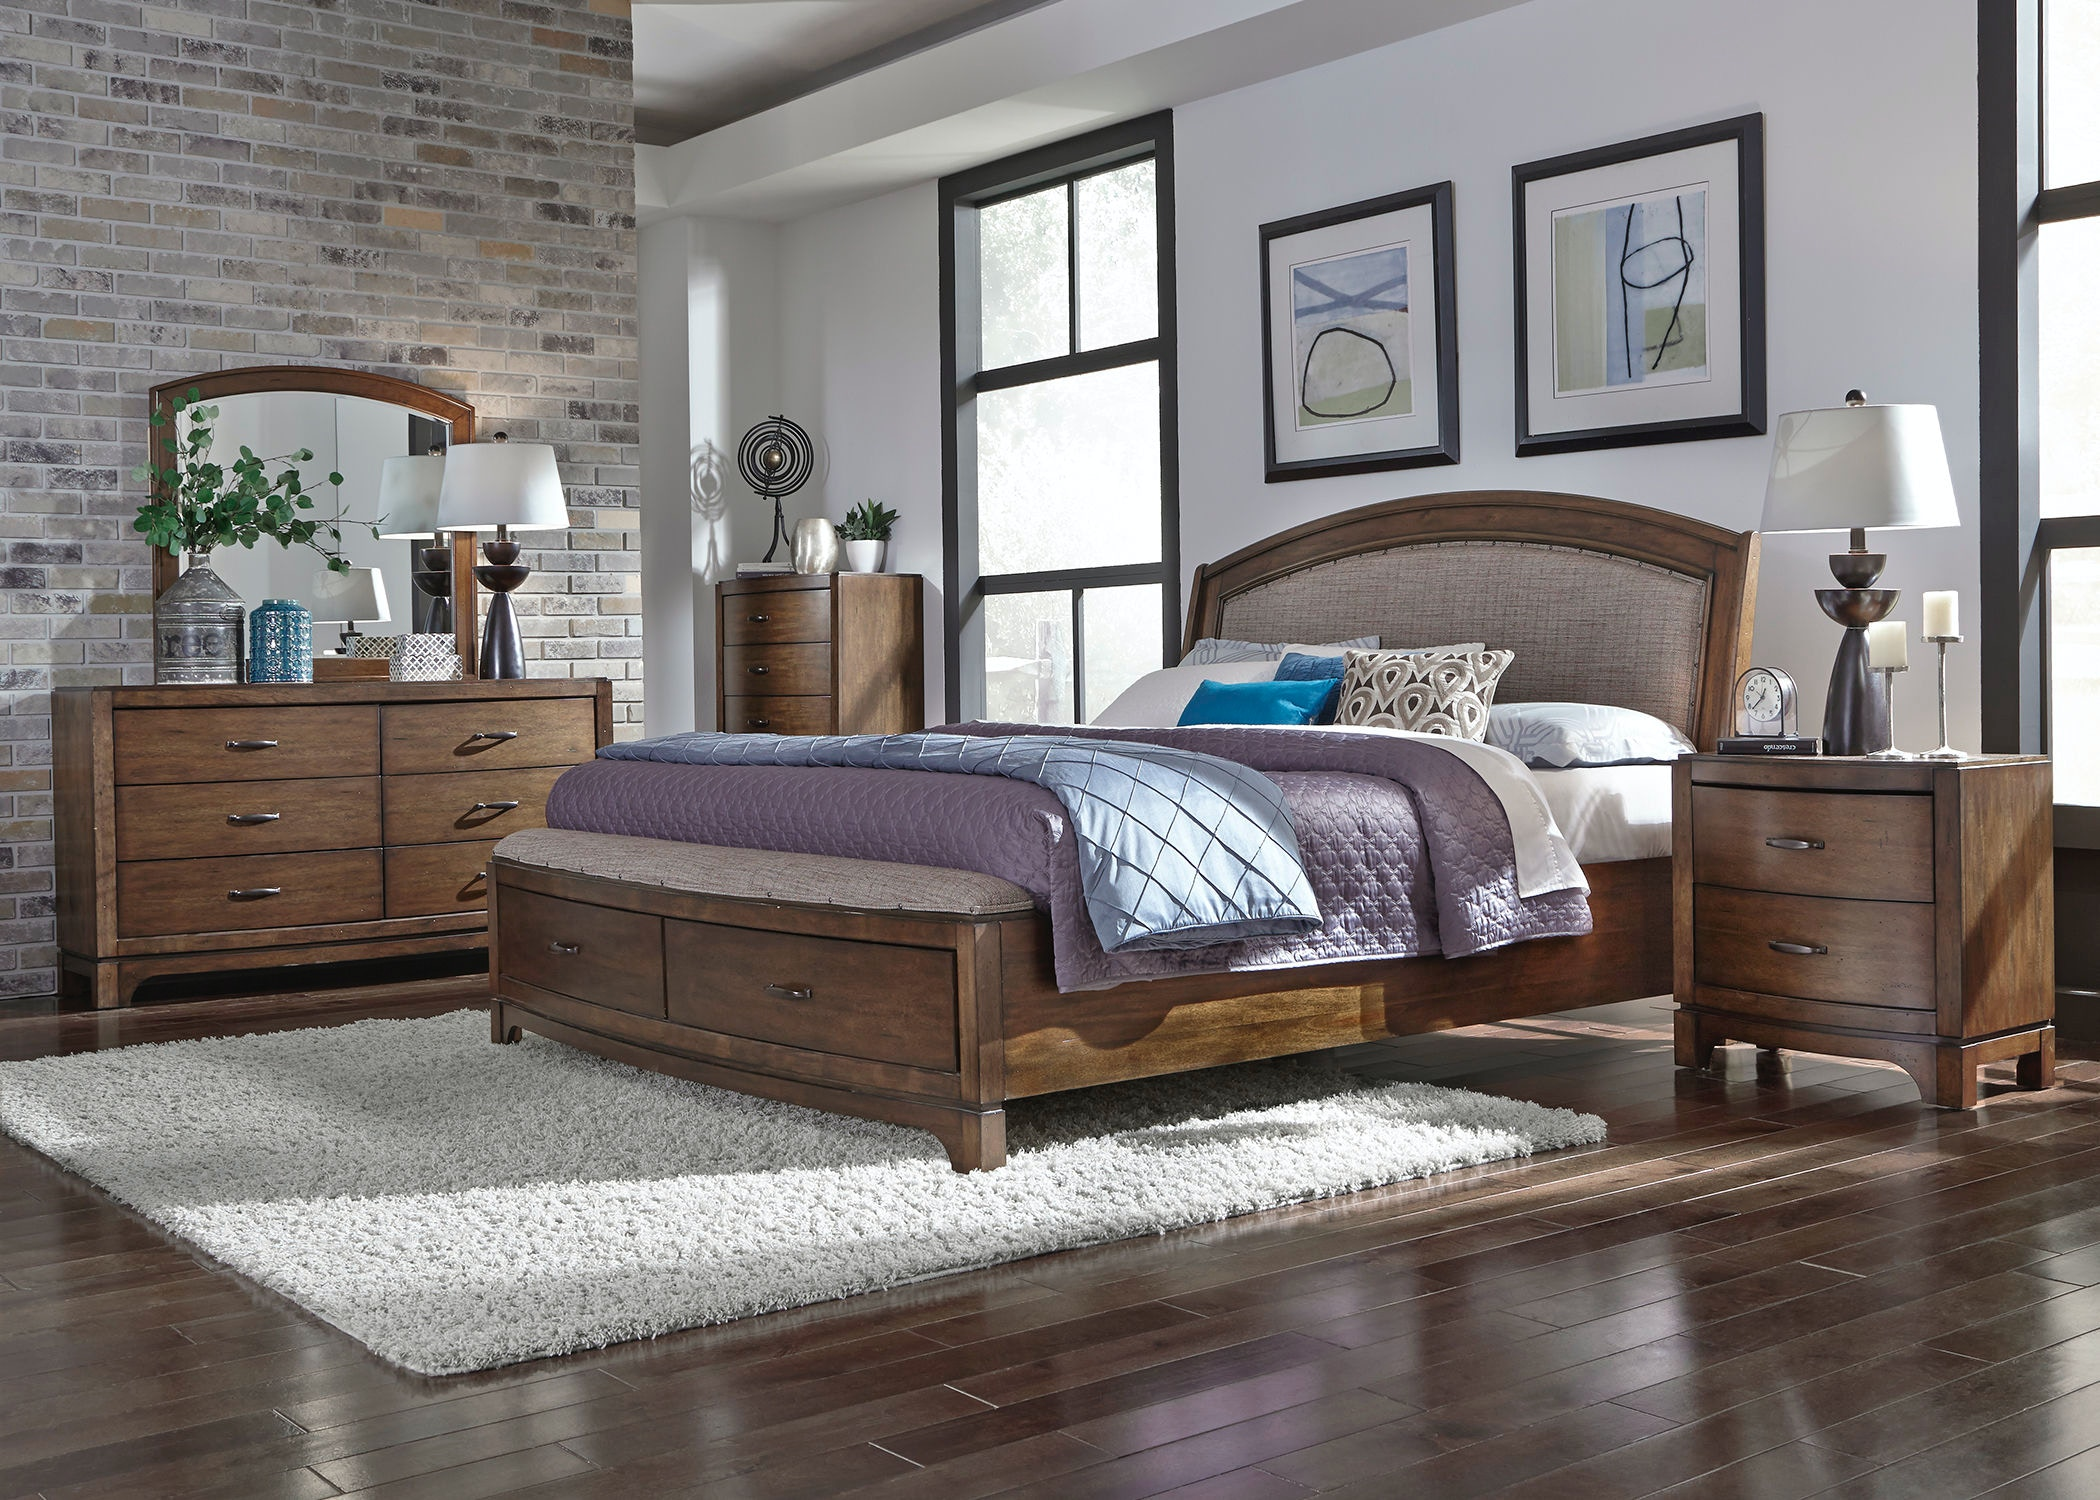 liberty furniture bedroom king storage bed dresser and mirror rh ramseyfurniturecompany com bedroom sets atlanta ga bedroom furniture stores in atlanta ga